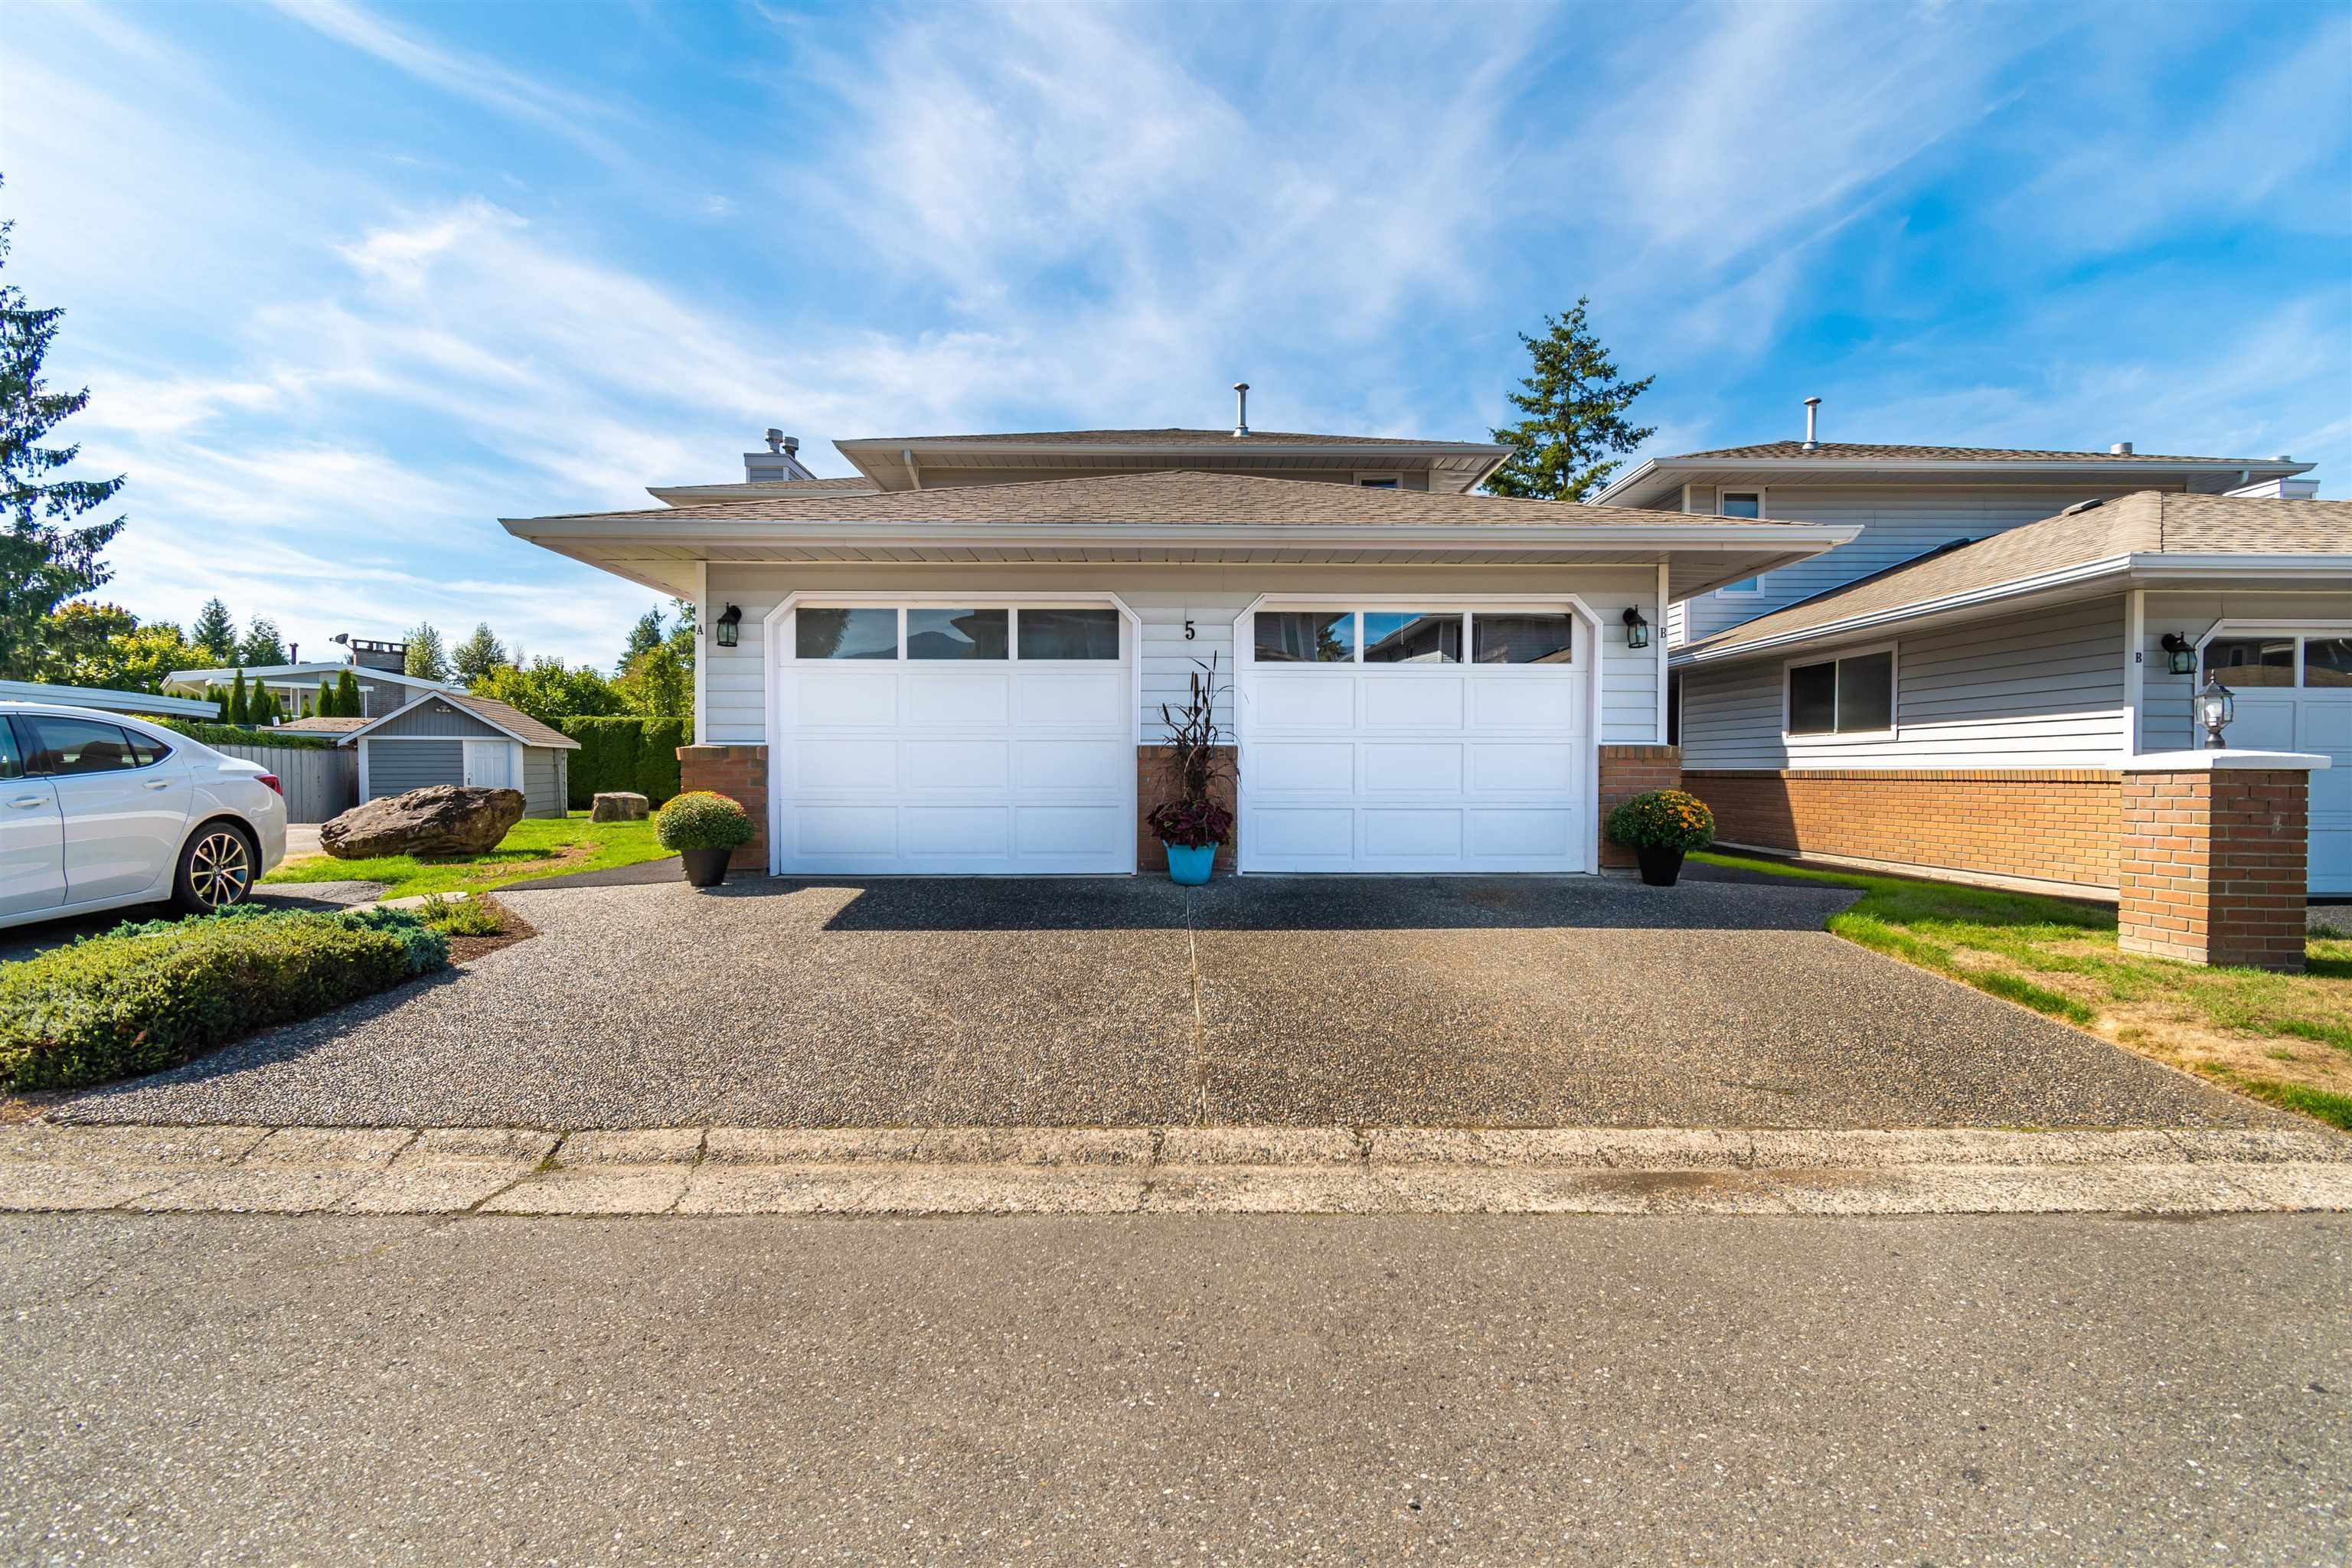 """Main Photo: 5B 46354 BROOKS Avenue in Chilliwack: Chilliwack E Young-Yale Townhouse for sale in """"Rosshire Mews"""" : MLS®# R2615074"""